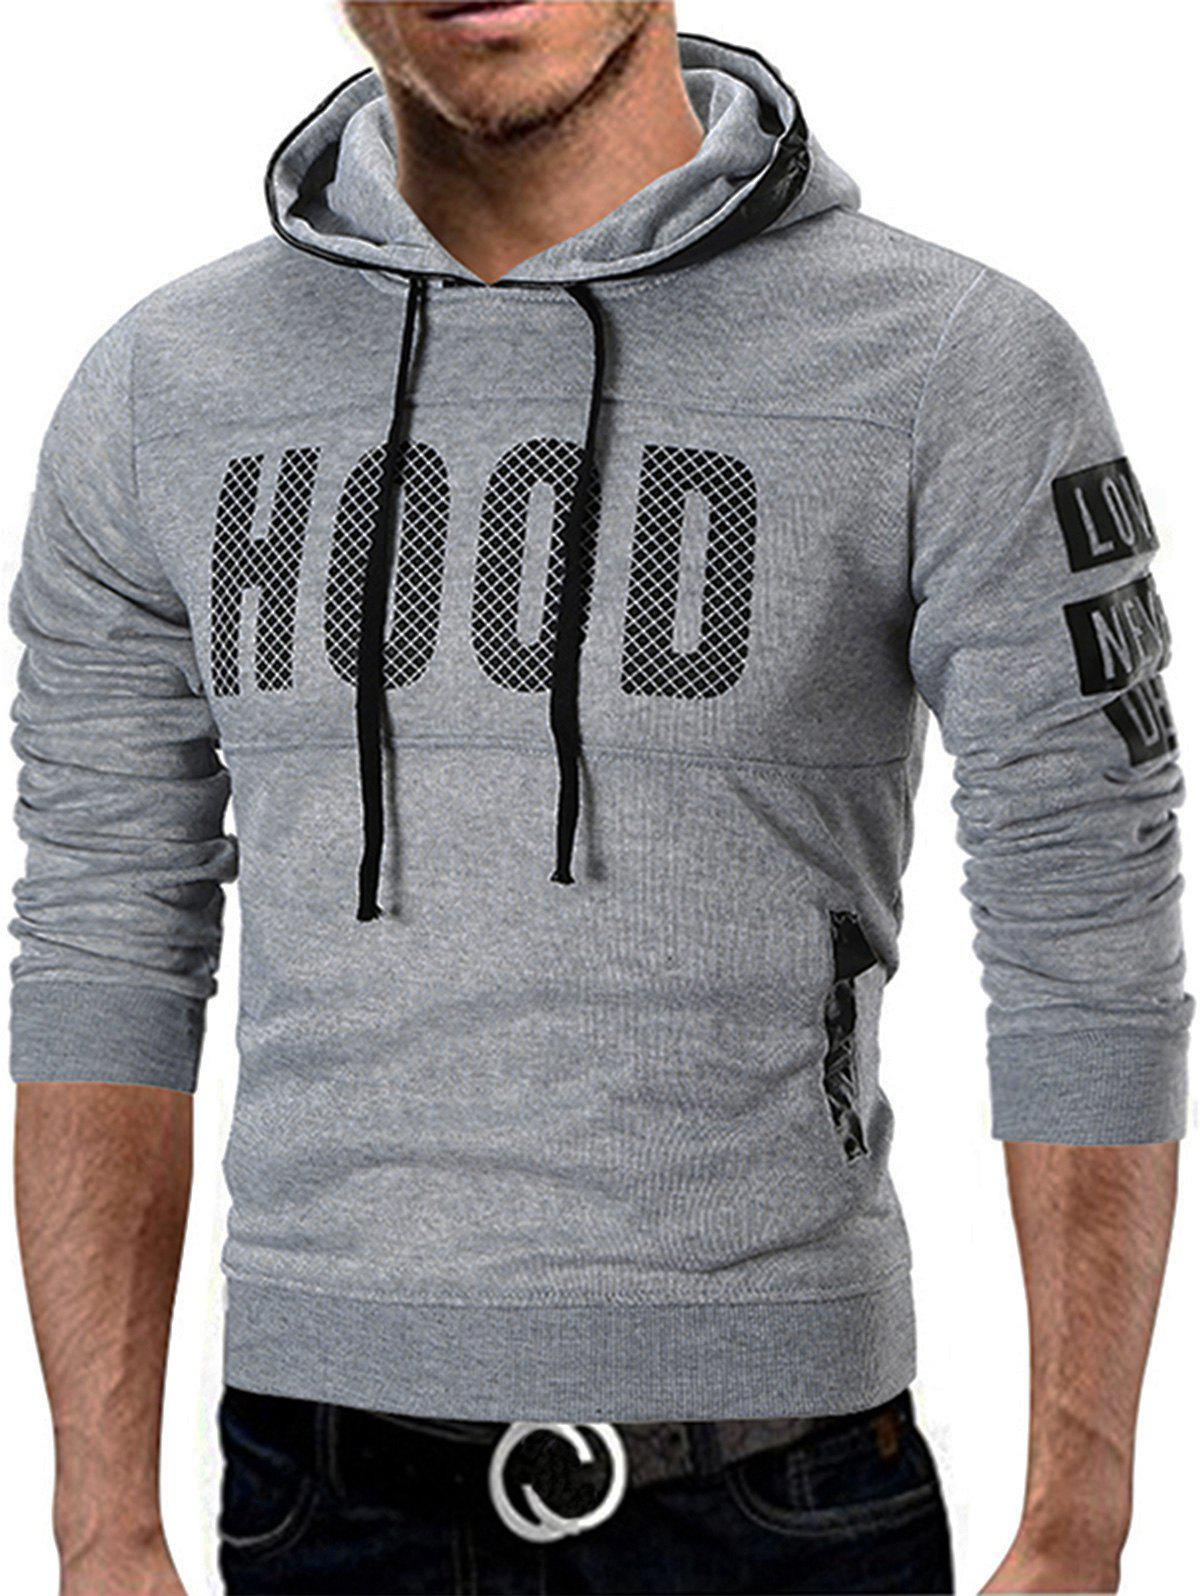 Graphic Fleece Lined Pullover Hoodie designing gestural interfaces touchscreens and interactive devices